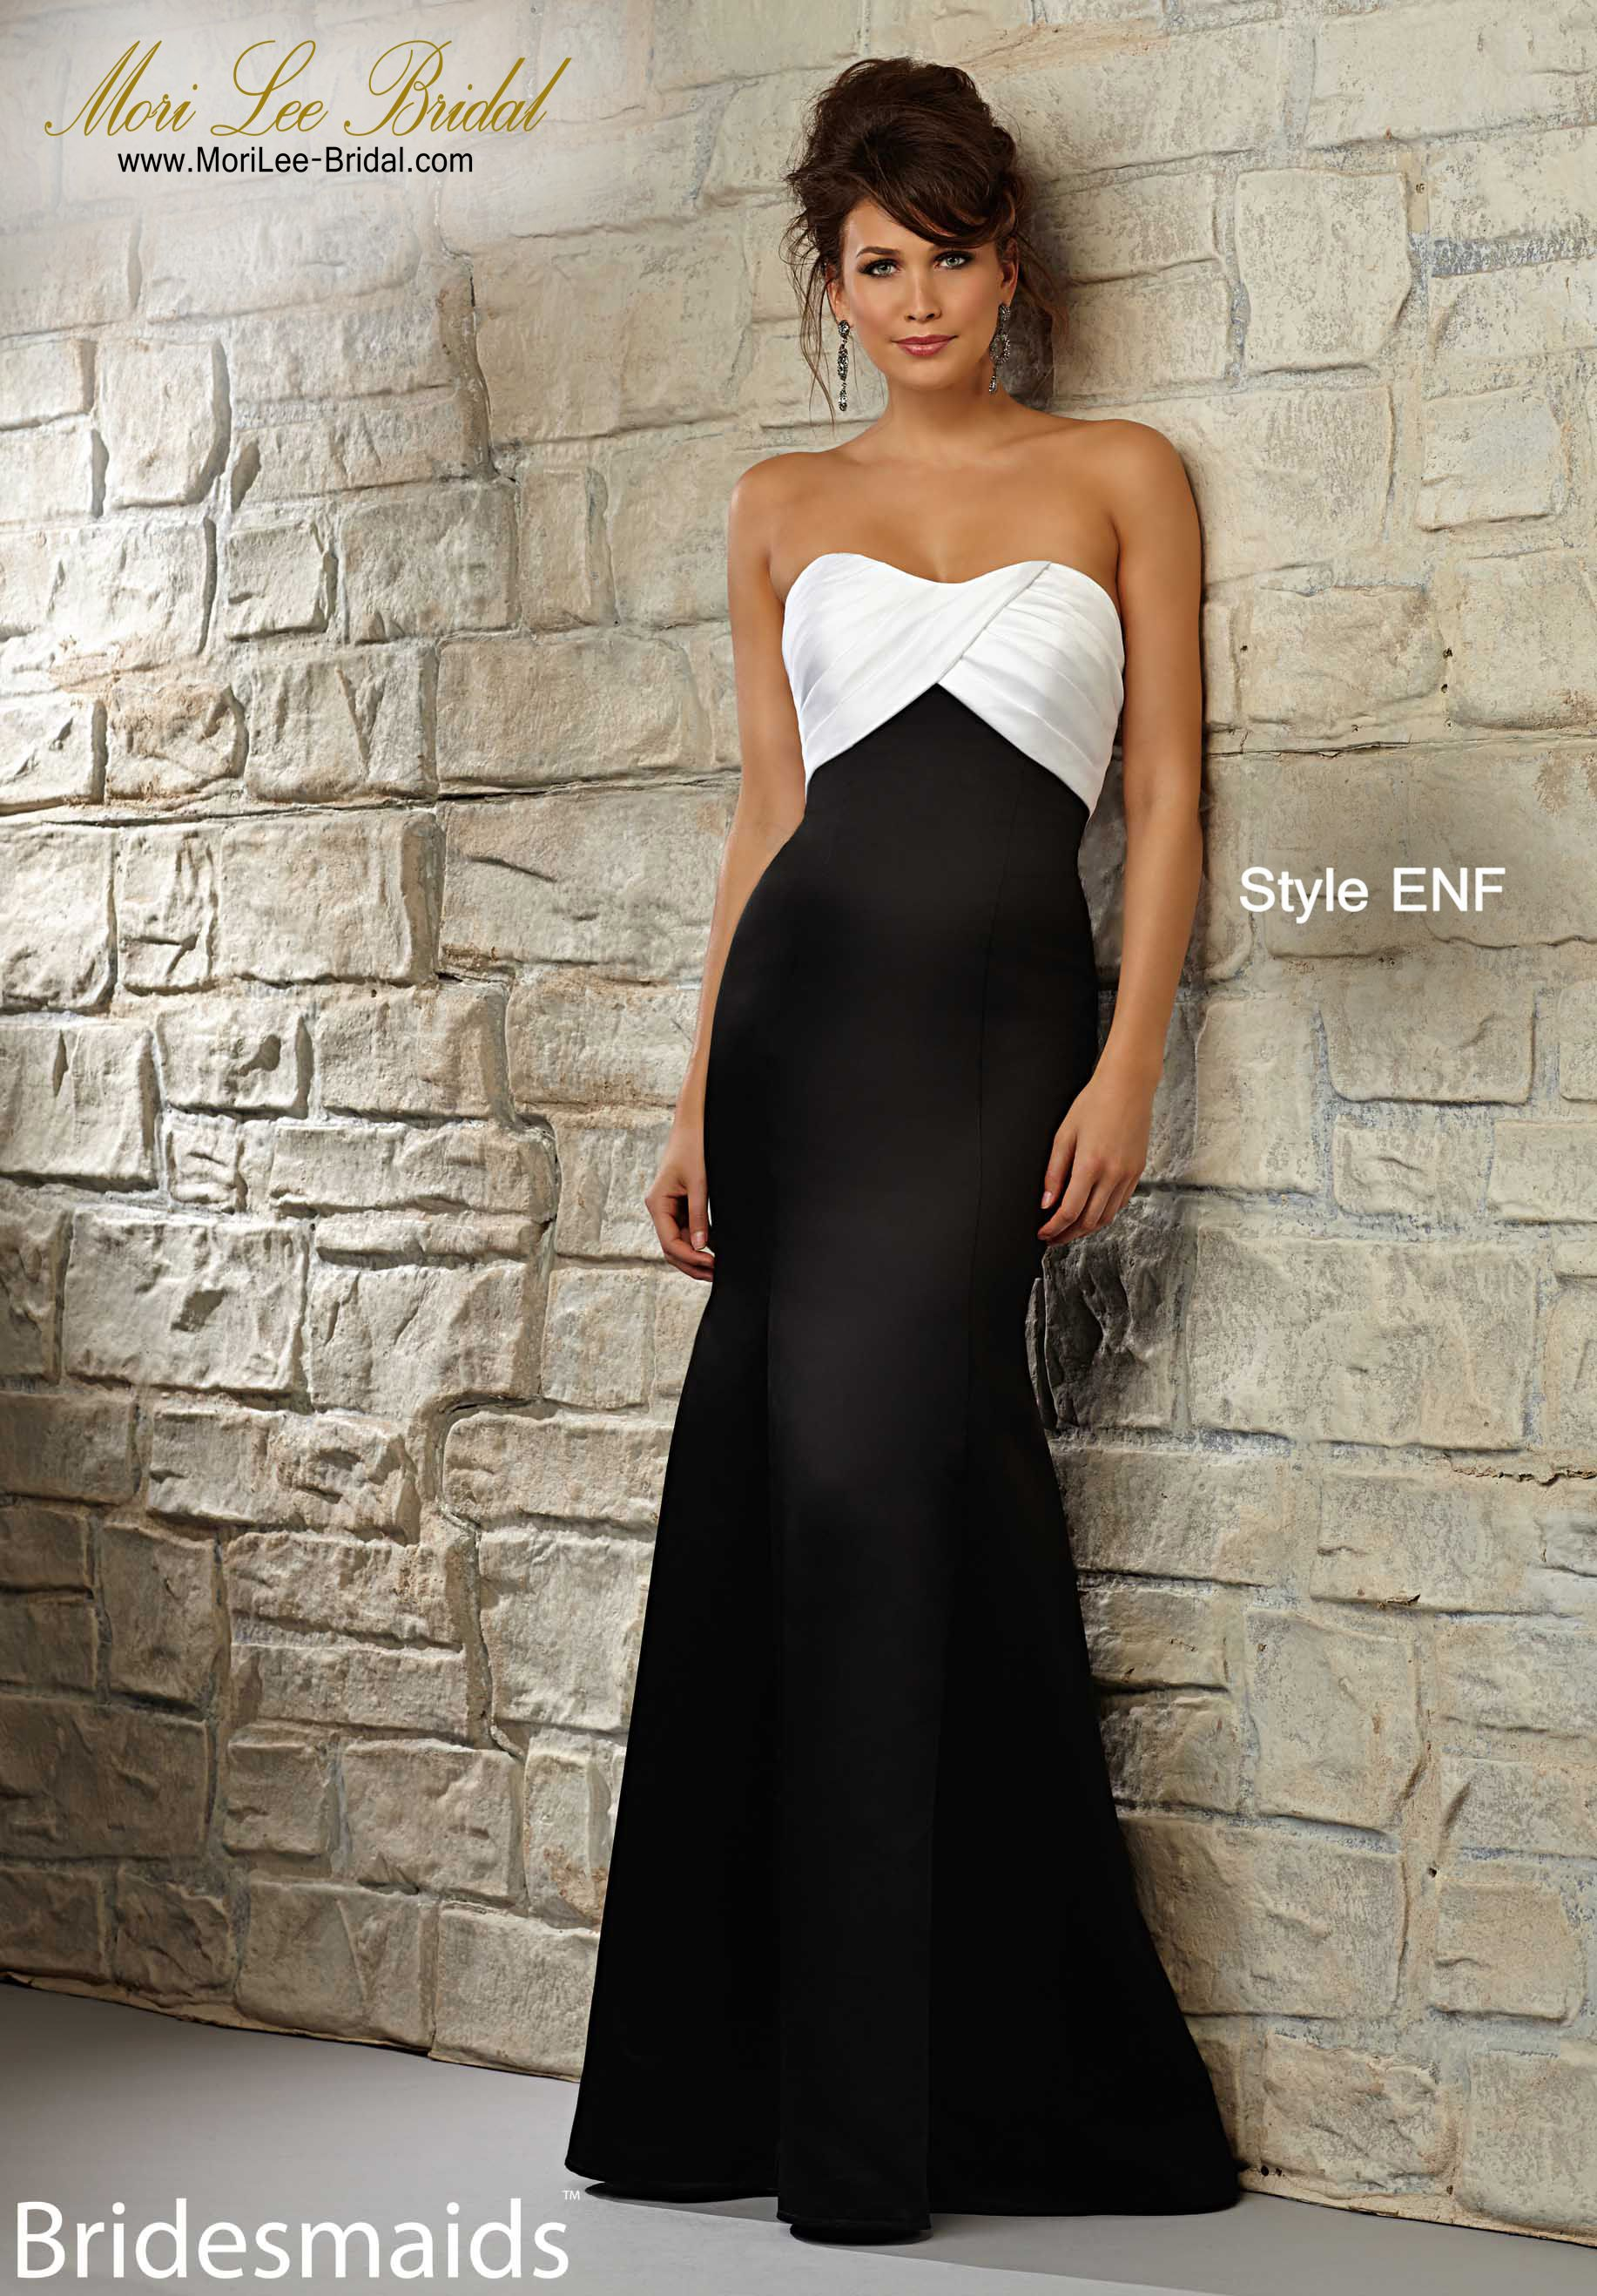 Dress Style Enf Satin Available In All Mori Lee Bridesmaids Satin Colors